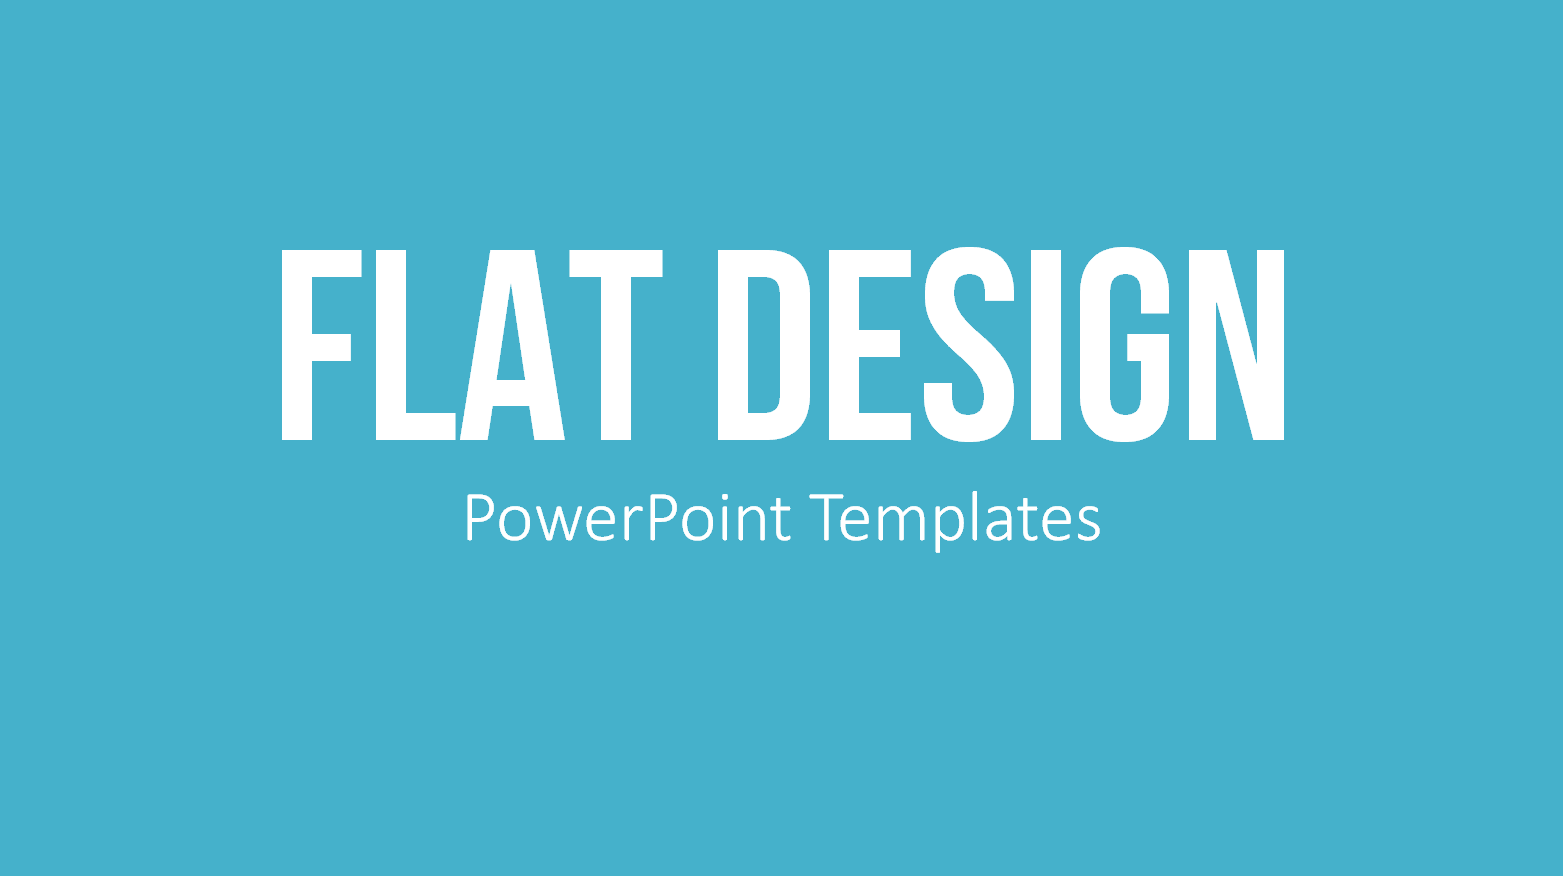 PowerPoint Templates Flat Design